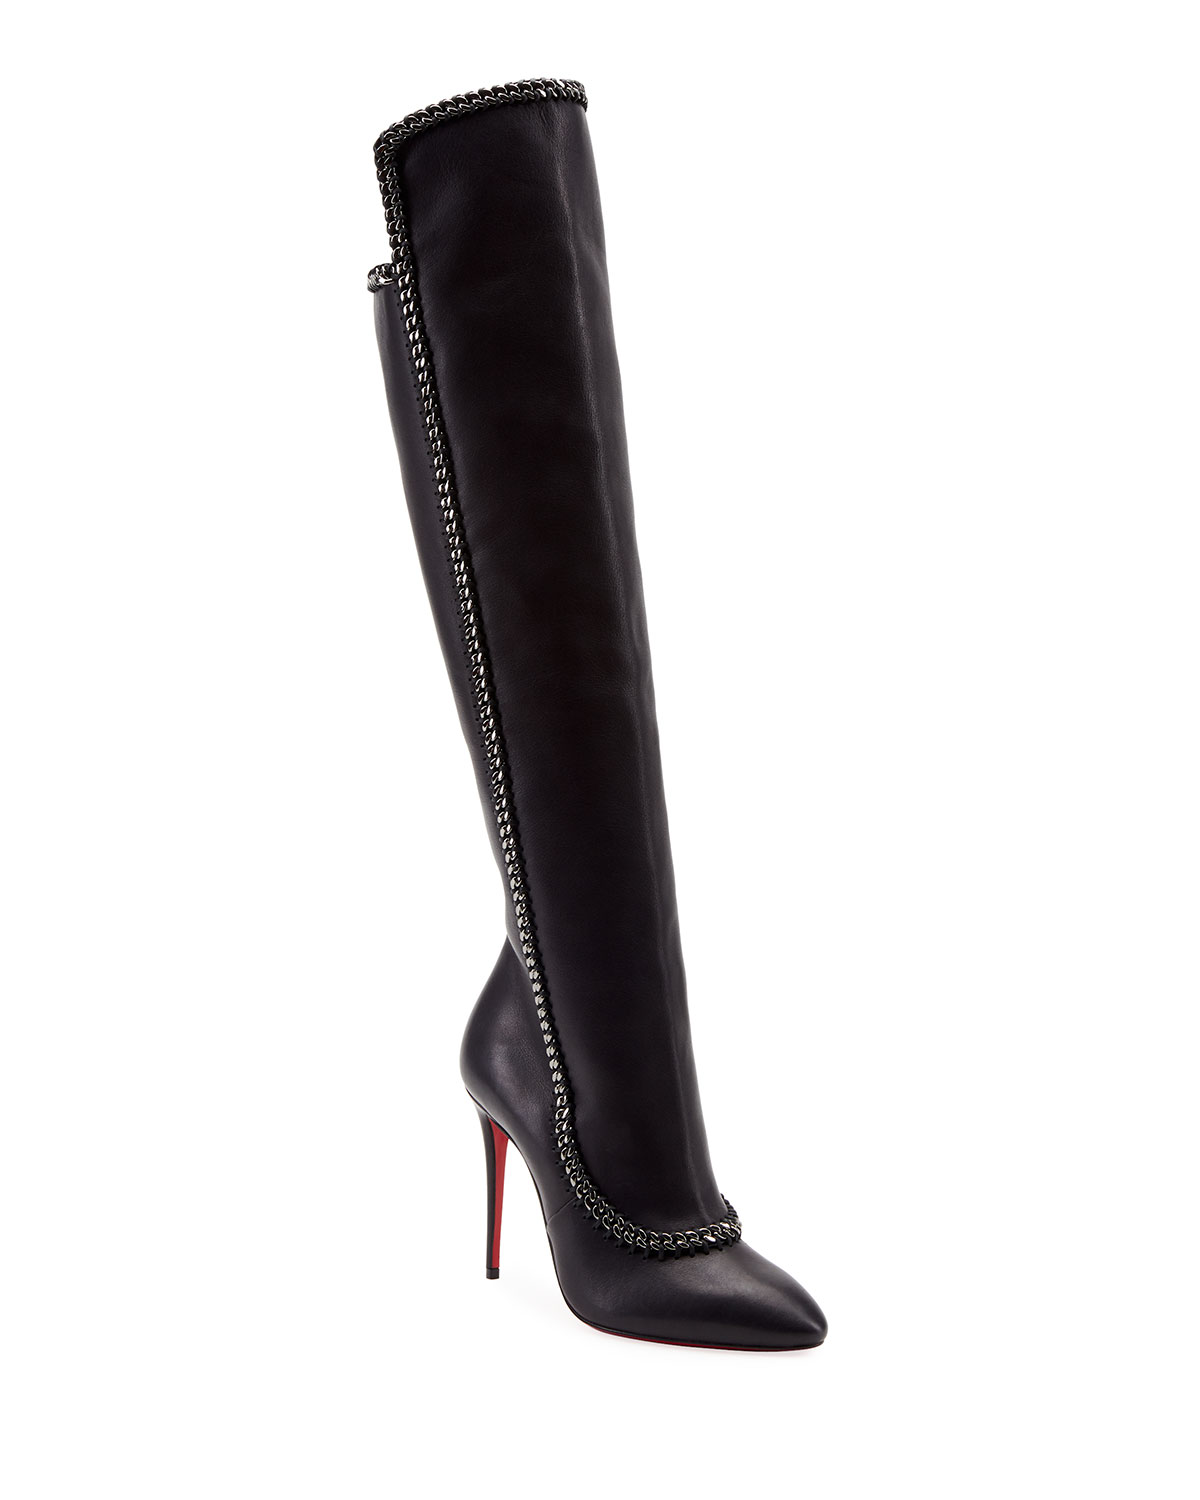 4a0d92f994a Clemence Botta Red Sole Boots